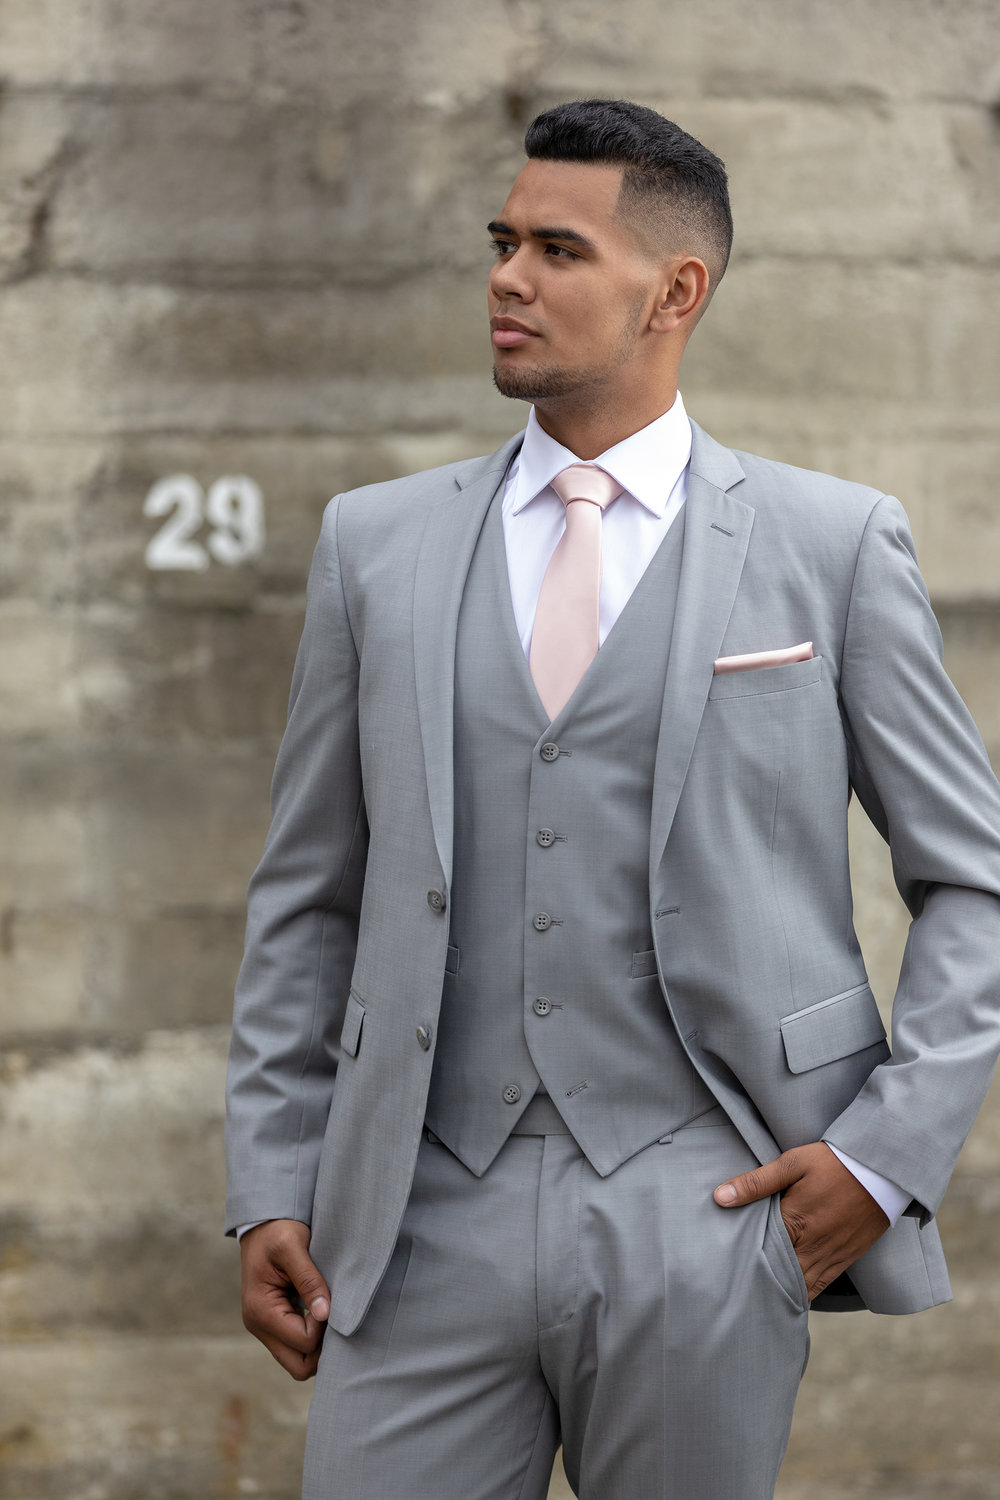 Light grey - Slim Fit- Notch lapel- 2 button suit jacket- Straight leg suit trouserHire price $120 NZDReg: 88—136Short: 8—120Tall: 88—120